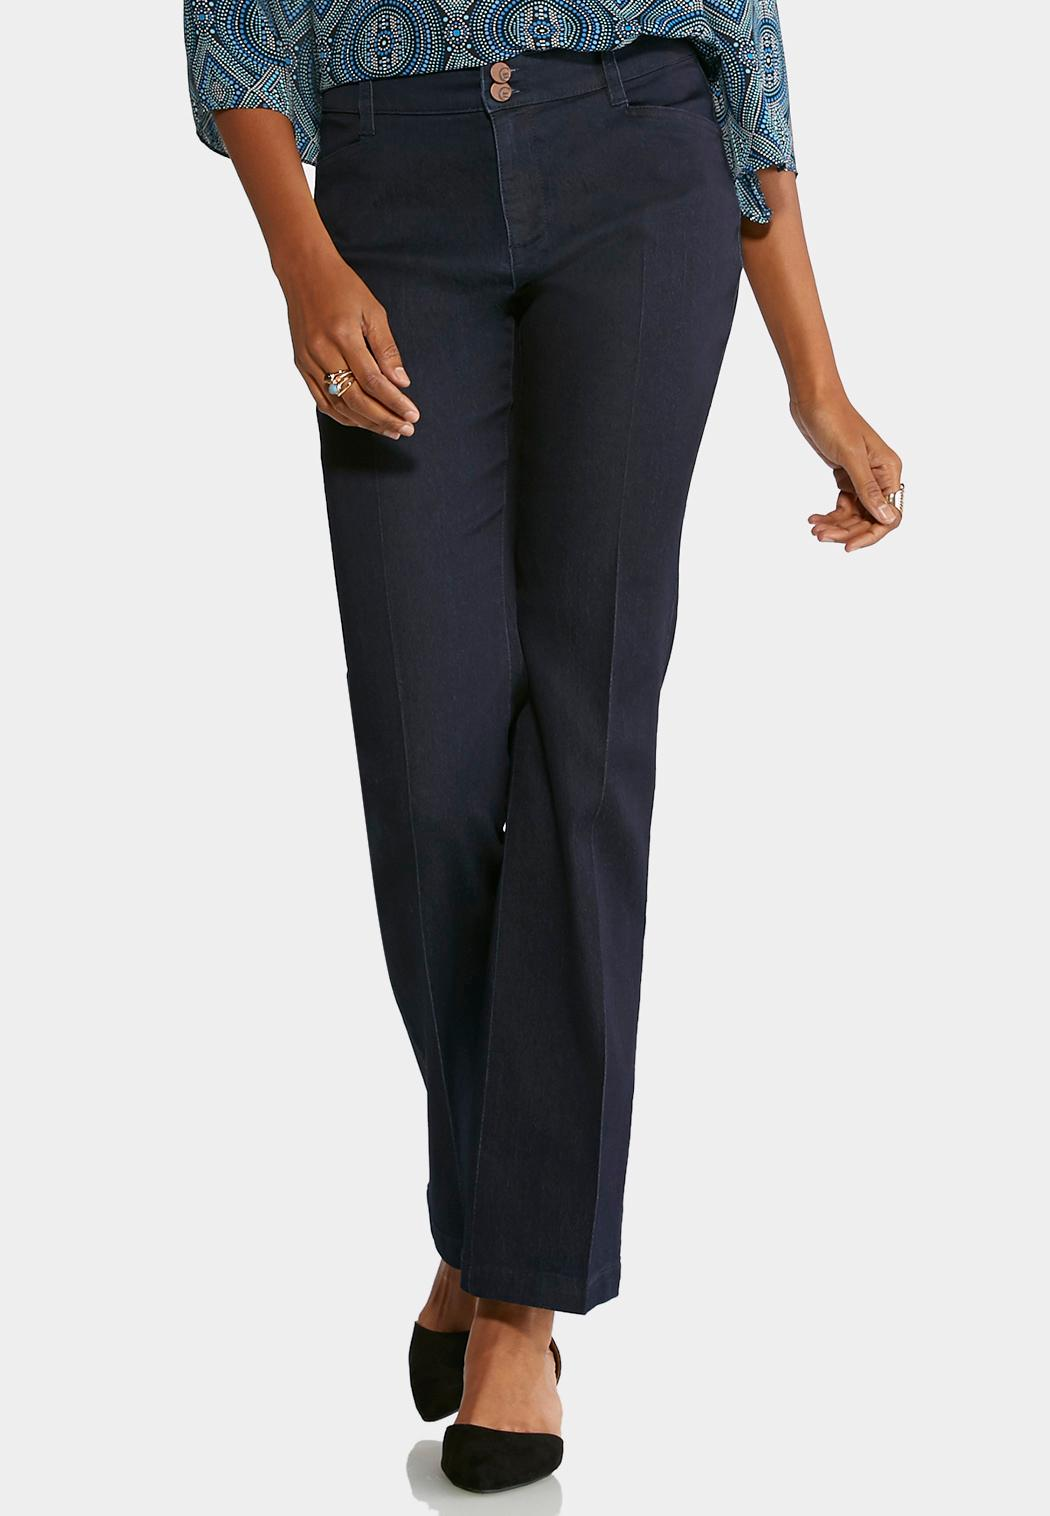 Shop petite pants, dress pants, casual pants for petites & more at Lord & Taylor. Free shipping on any order over $